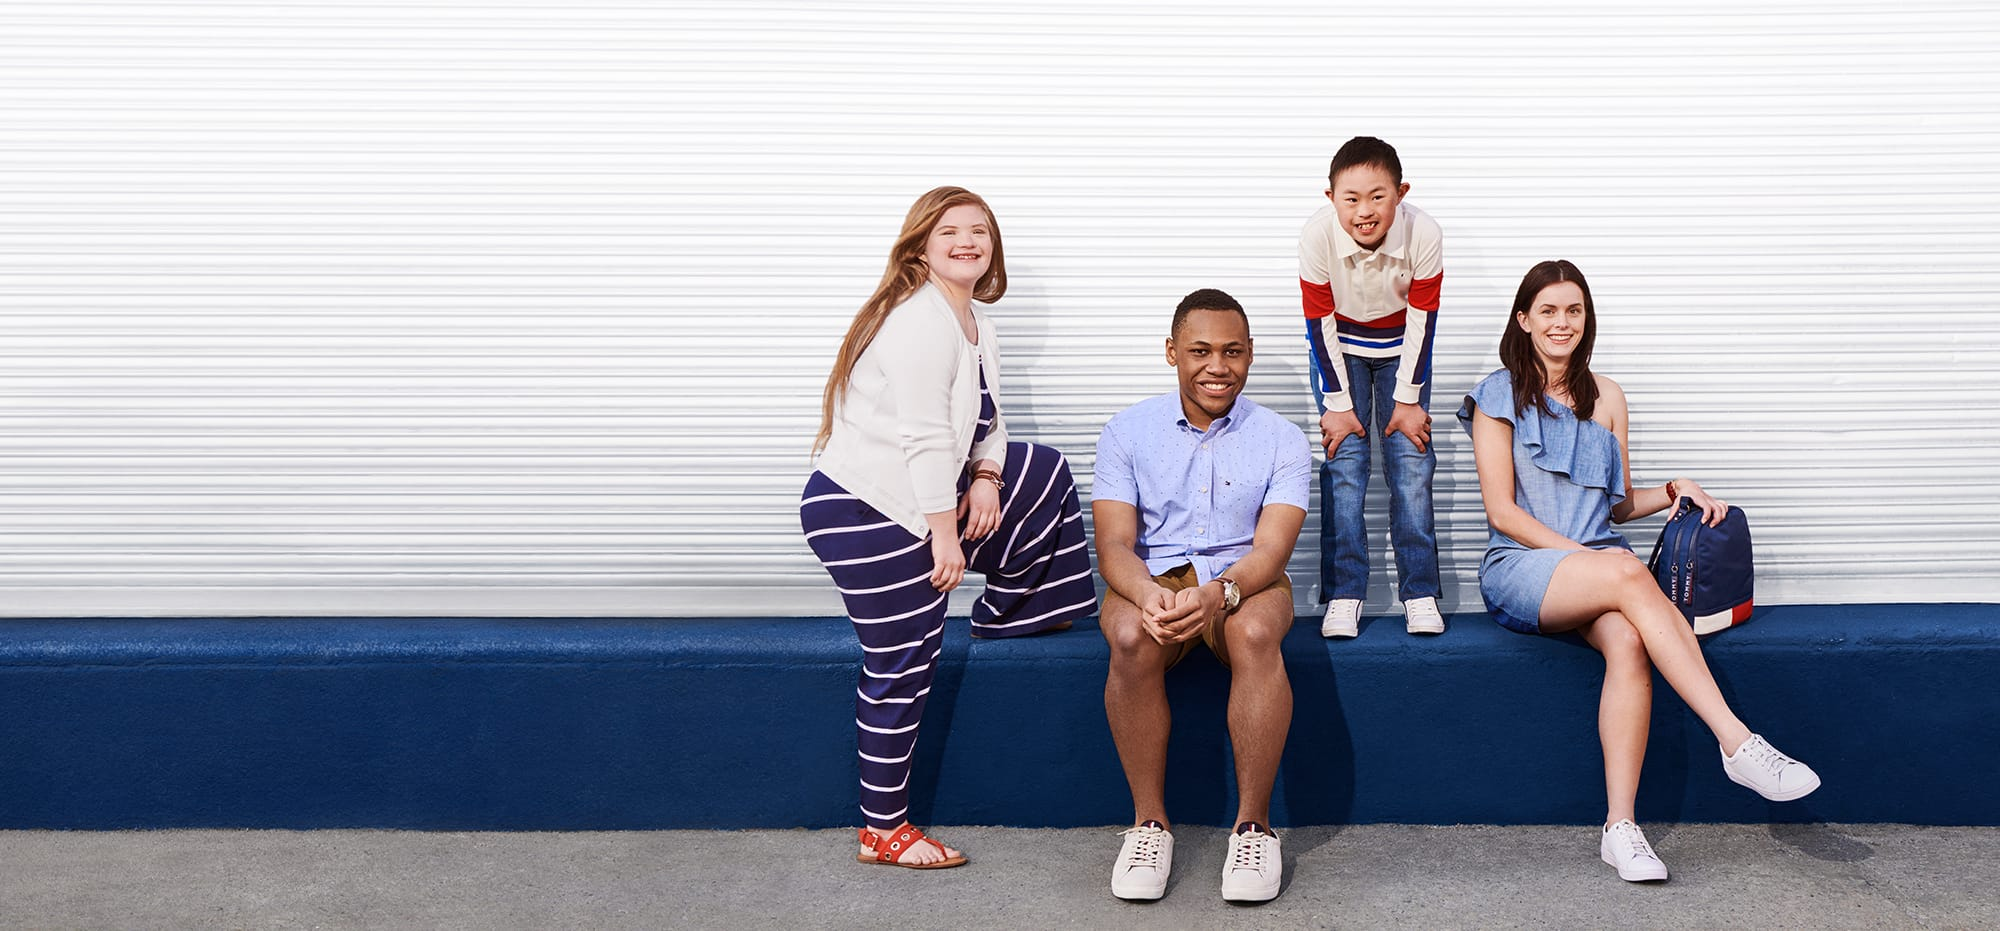 Tommy Hilfiger Adaptive. Inclusive design, fashion for all. Group of adult and child models wear classic Tommy style, specially designed to make dressing easier.